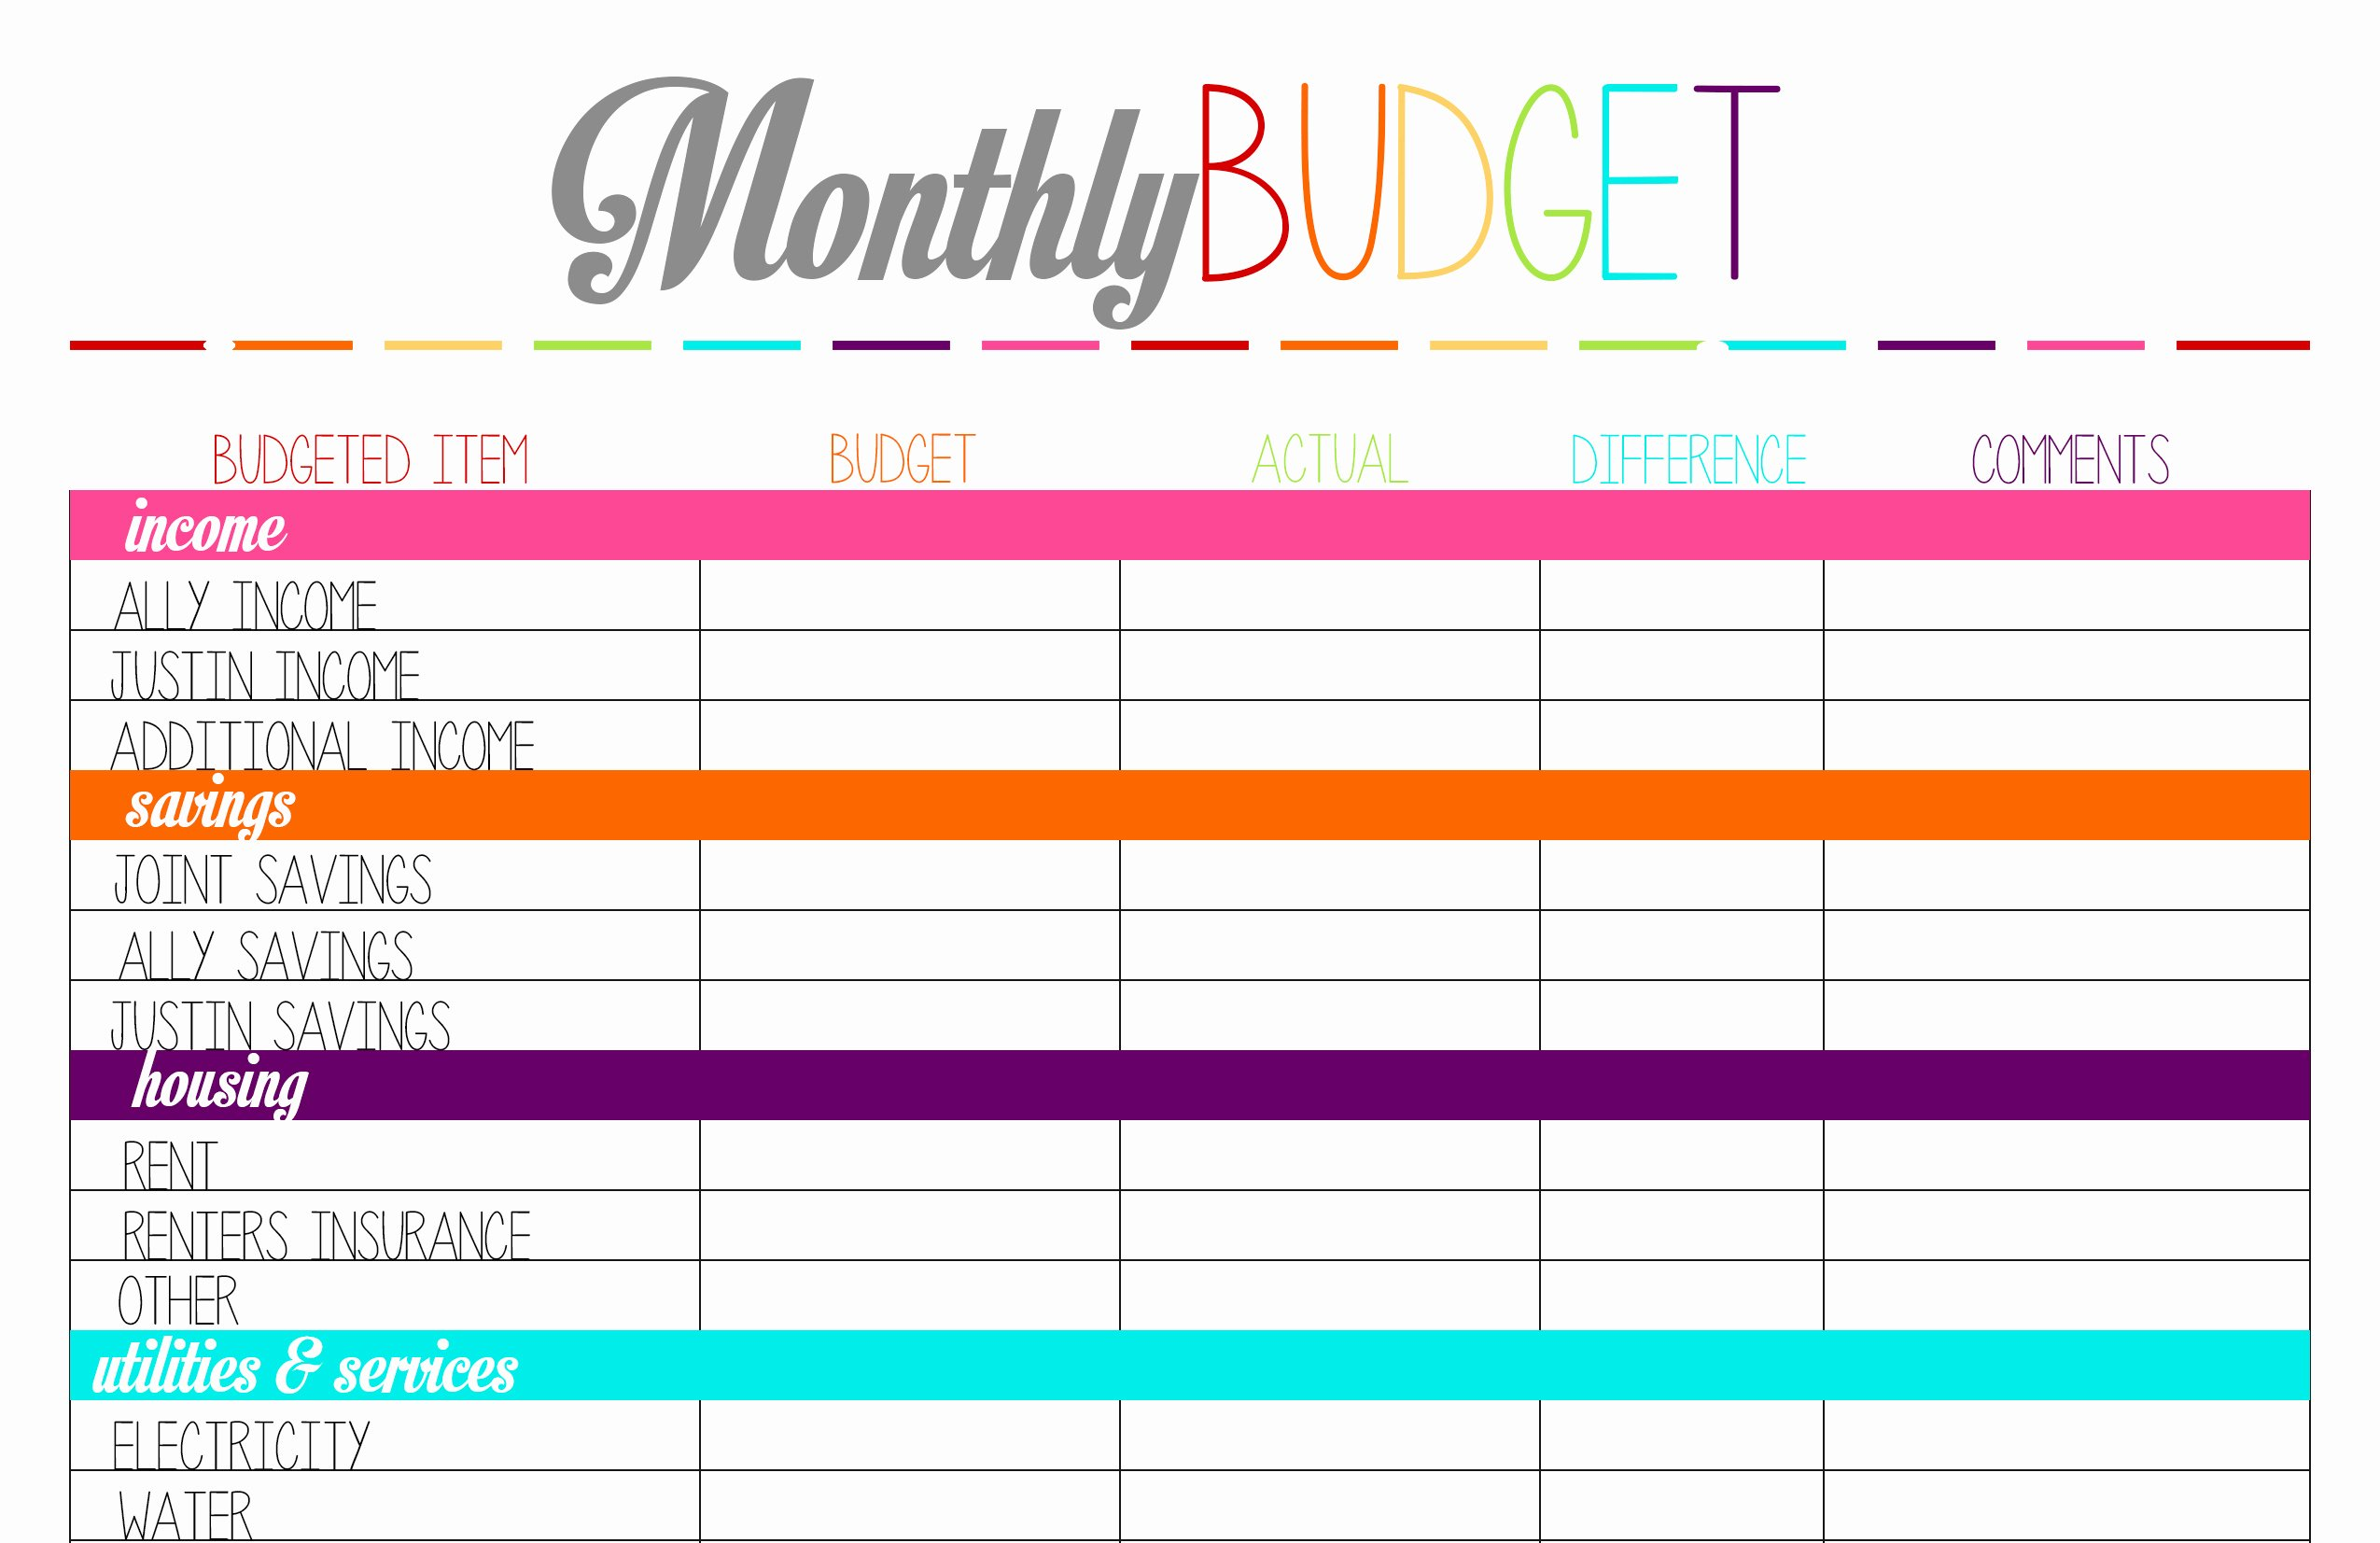 Free Printable Budget Templates Beautiful top 5 Posts Of 2014 – Ally Jean Blog